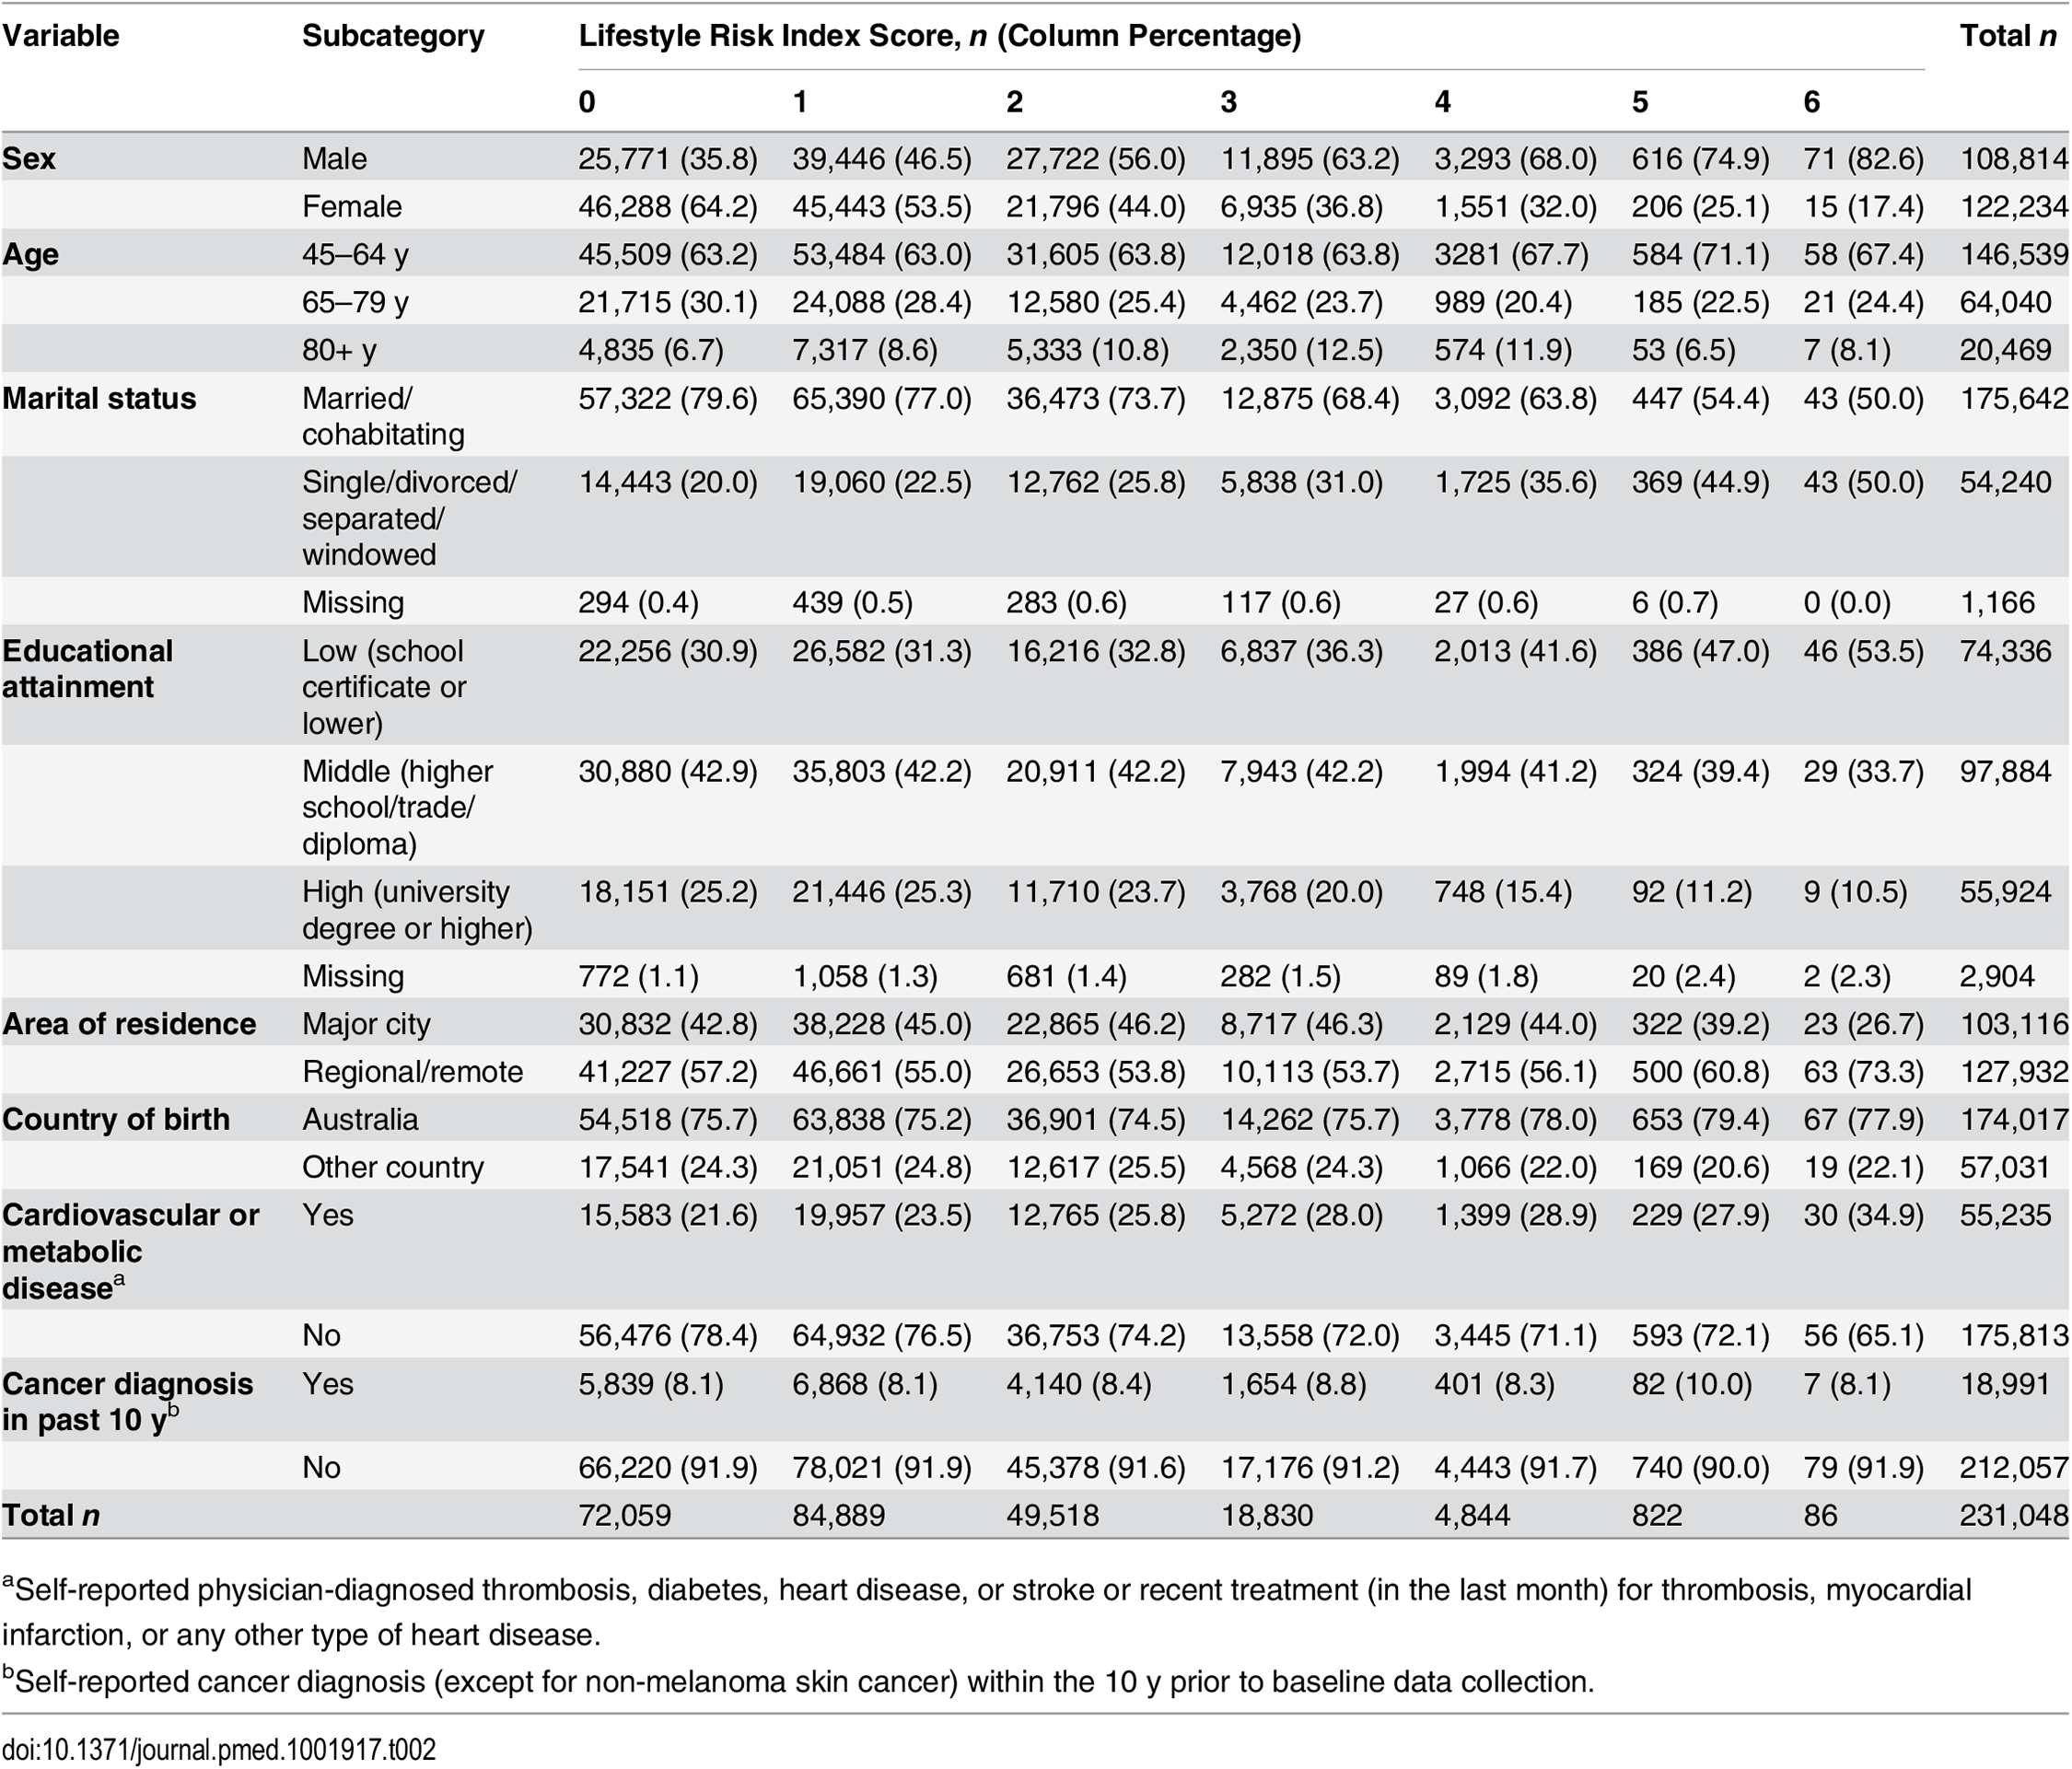 Socio-demographic and health characteristics of adults by lifestyle risk index score in New South Wales, Australia (2006–2009, <i>n</i> = 231,048).